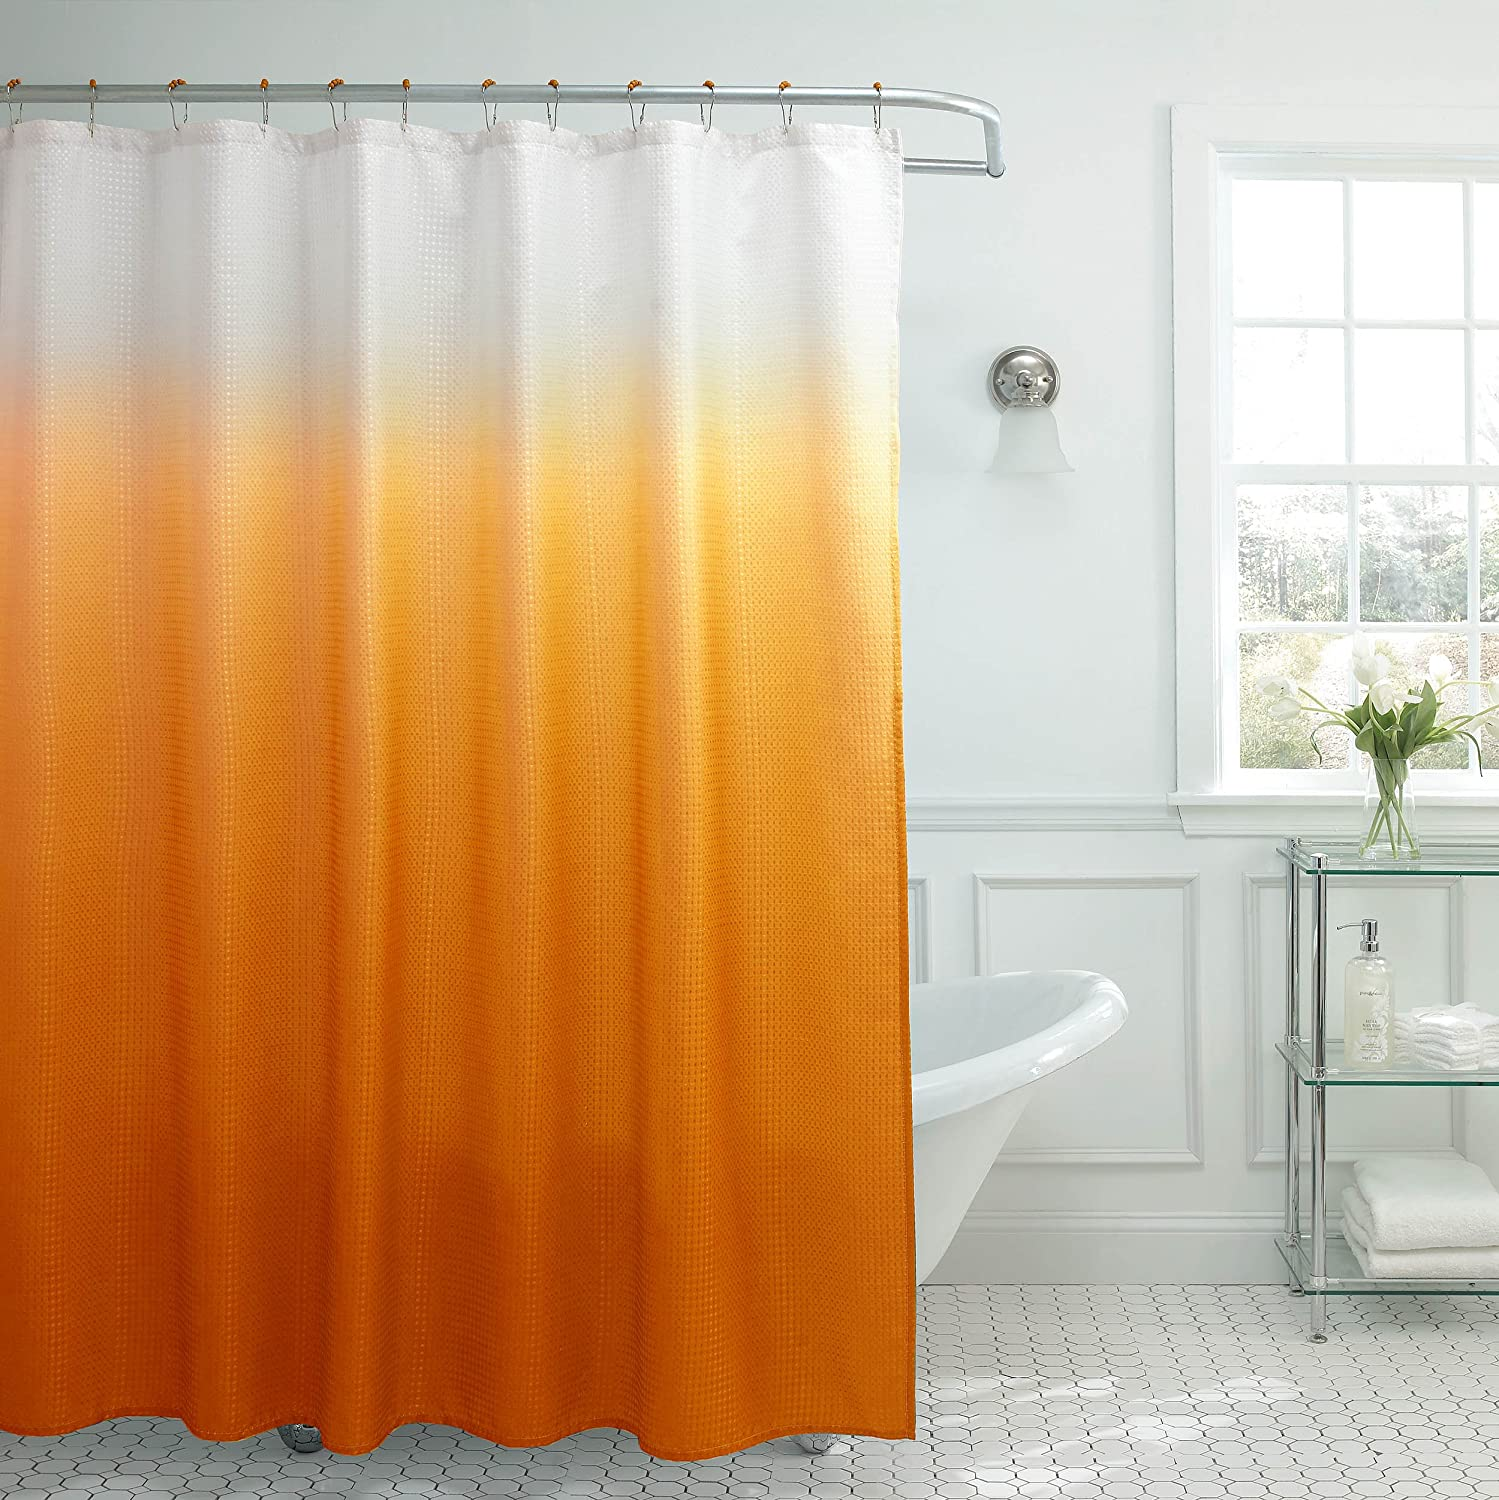 The 5 Best Shower Curtains: Reviews & Buying Guide 8